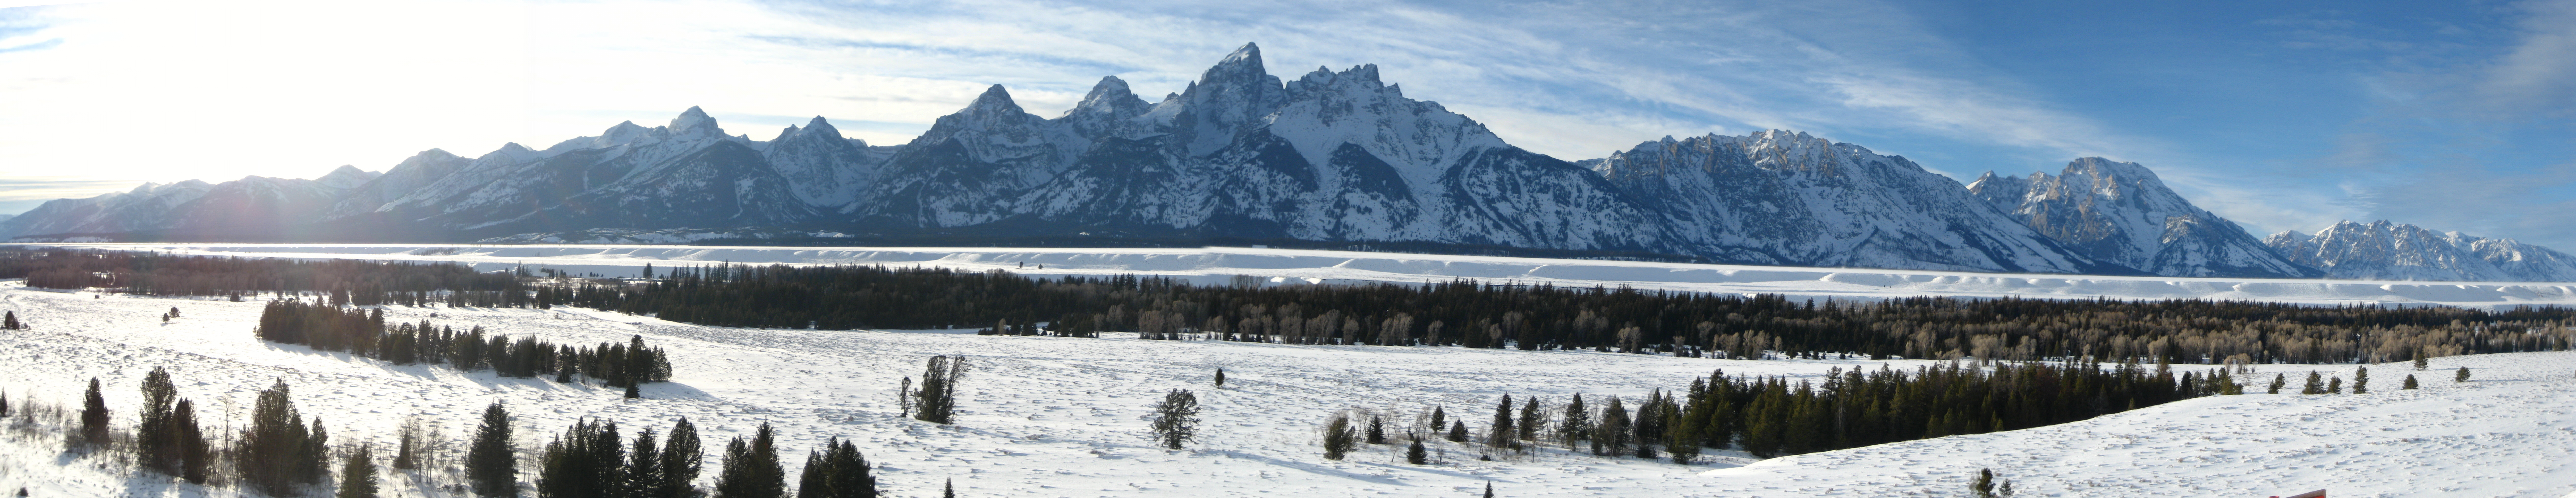 Panoramic view of the Teton Range looking west from Jackson Hole, Grand Teton National Park. Photo taken on April 30, 2007.